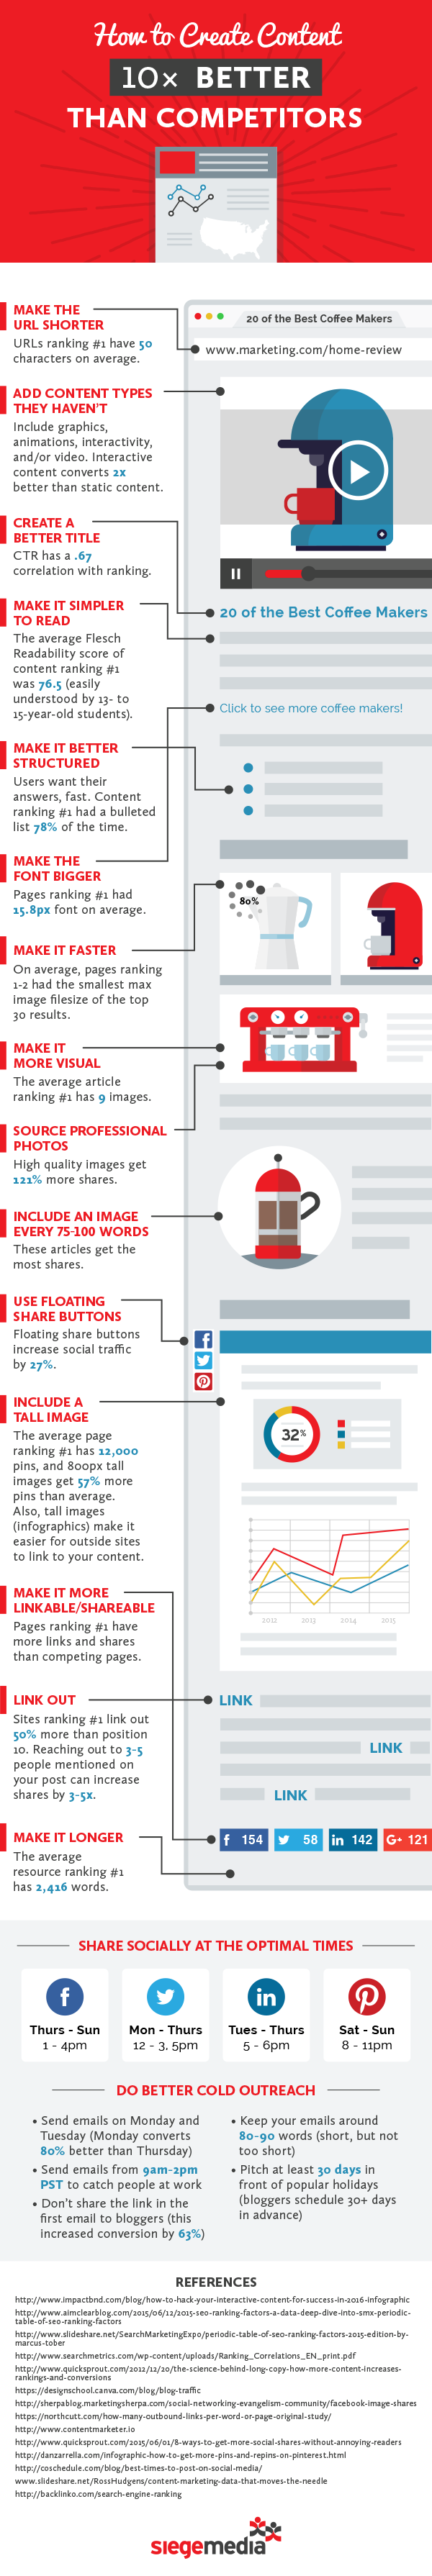 content-creation-17-tips-crush-Infographic-compressed.png